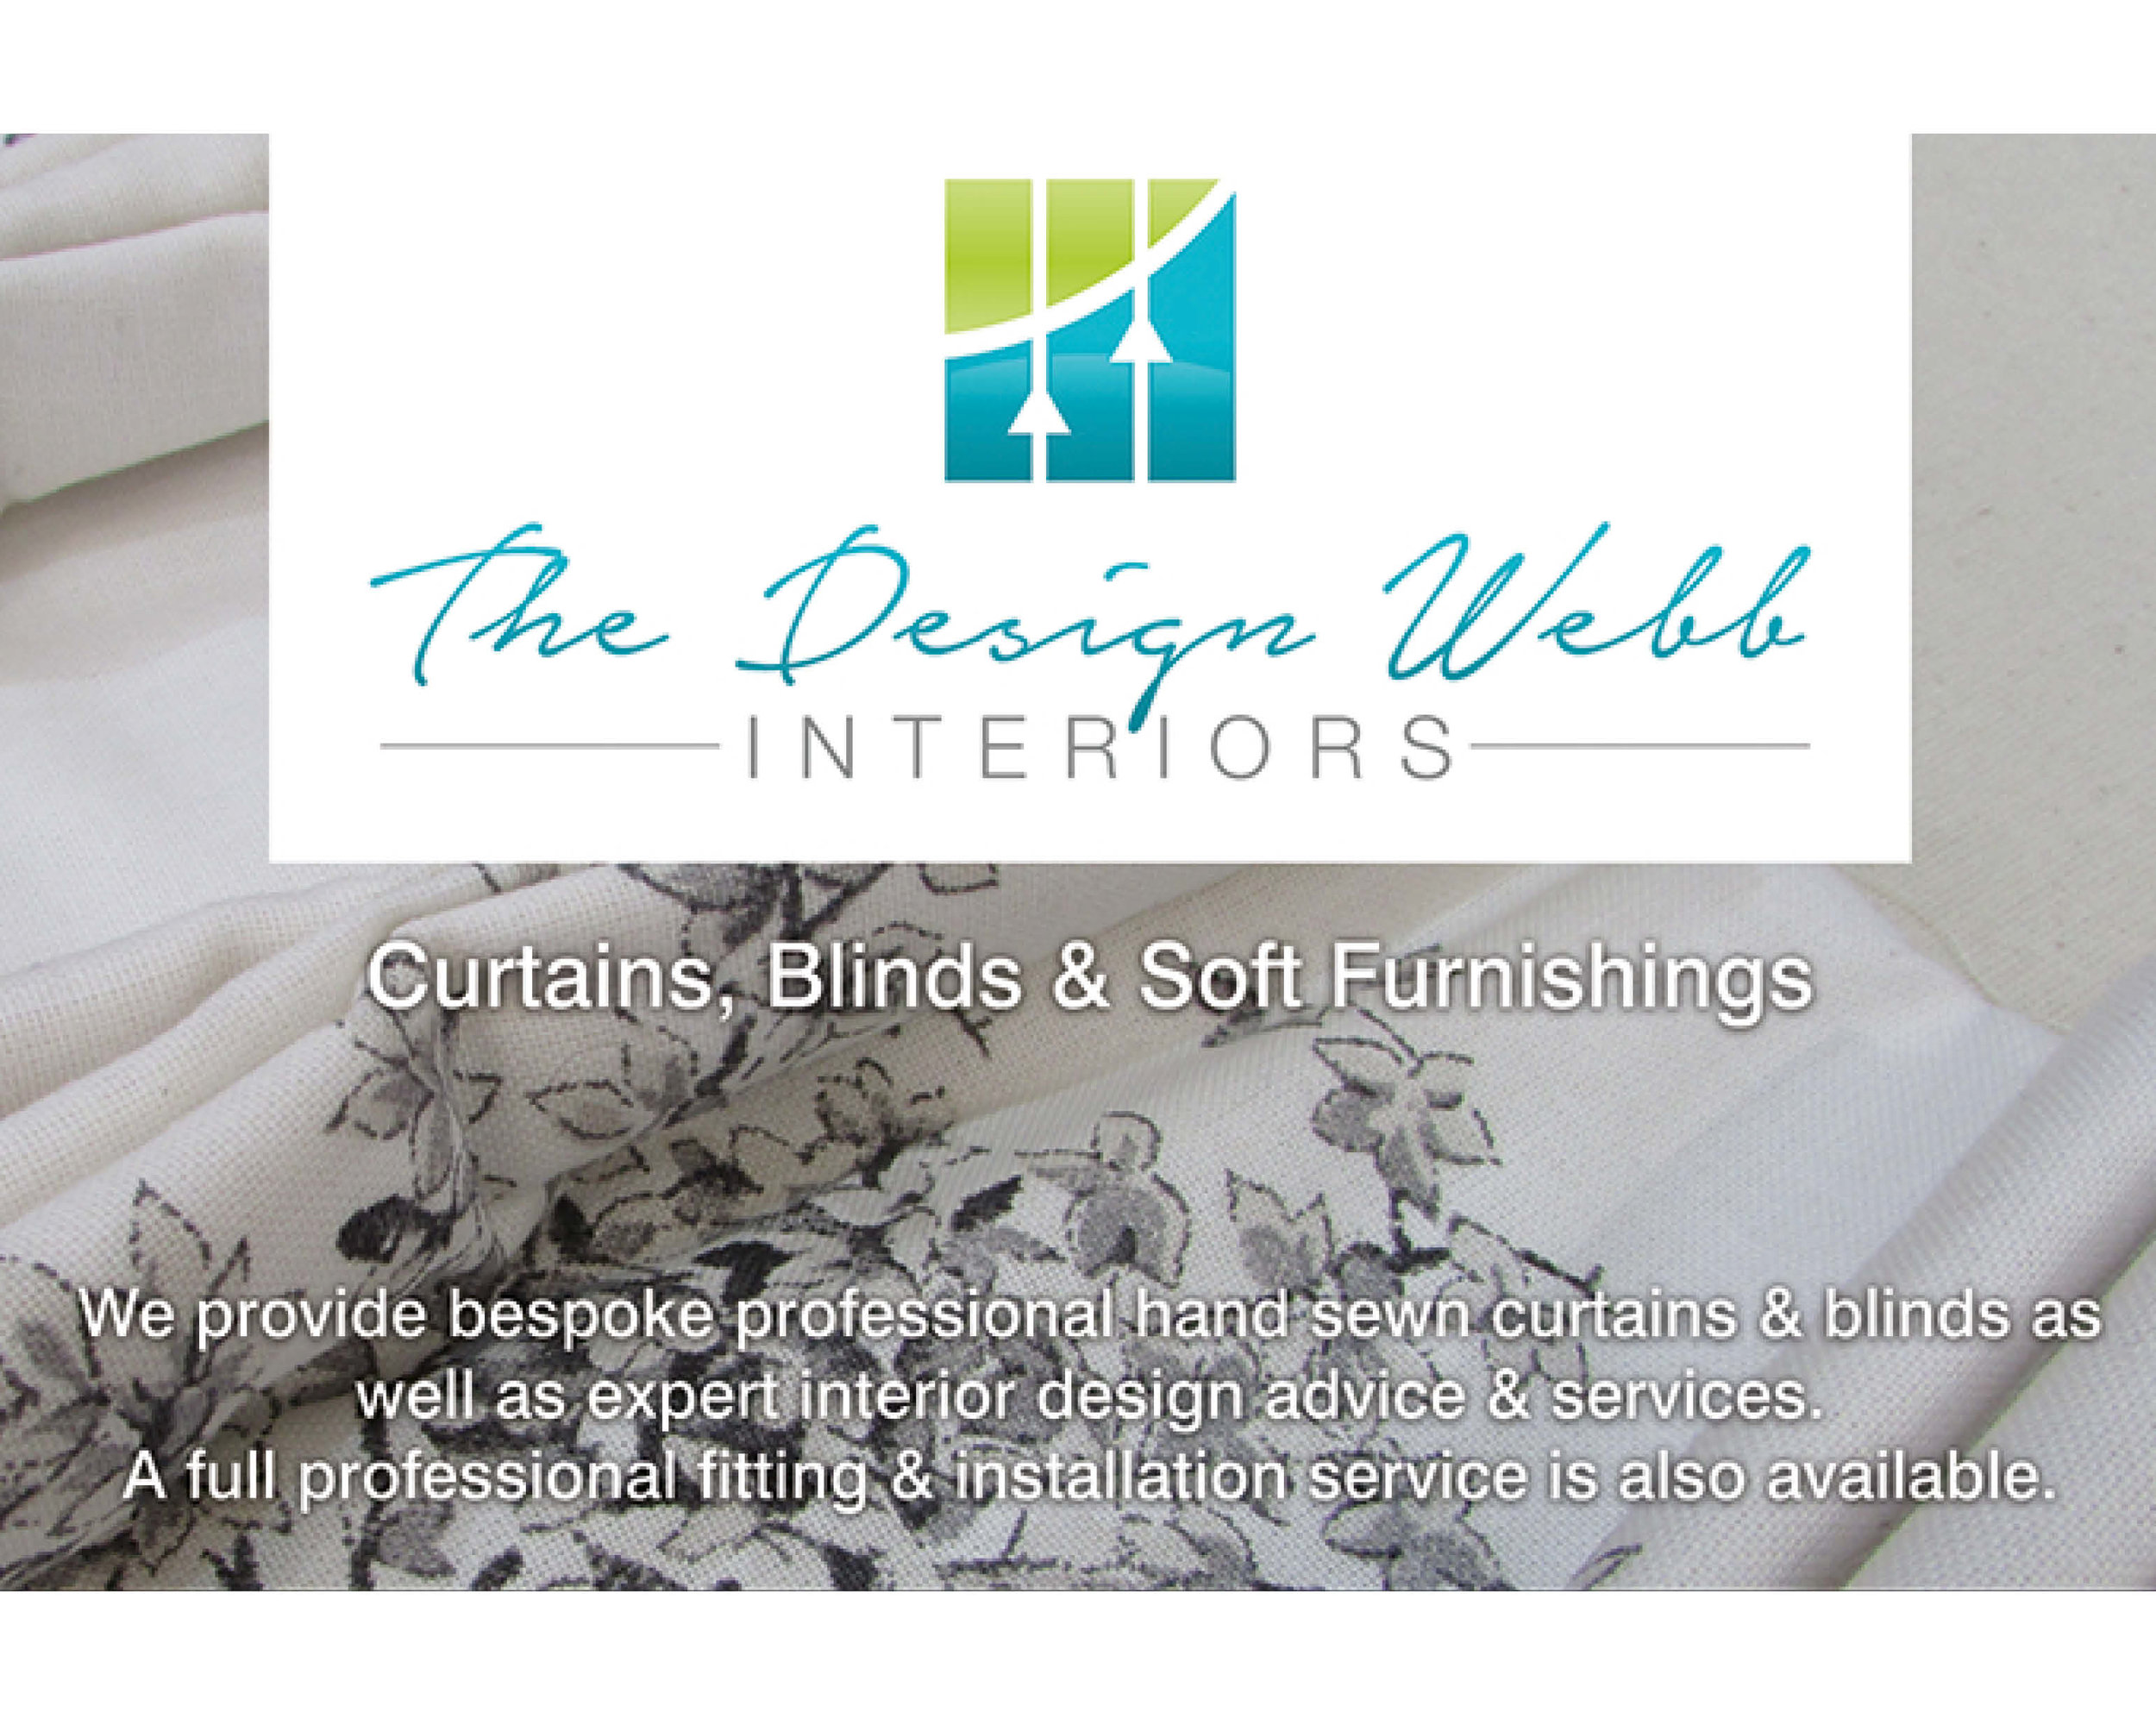 The Design Webb - Bespoke professional hand sewn curtains and blinds as well as expert interior design advice and services.Call us on: 07538 096966 or email info@thedesignwebb.co.uk